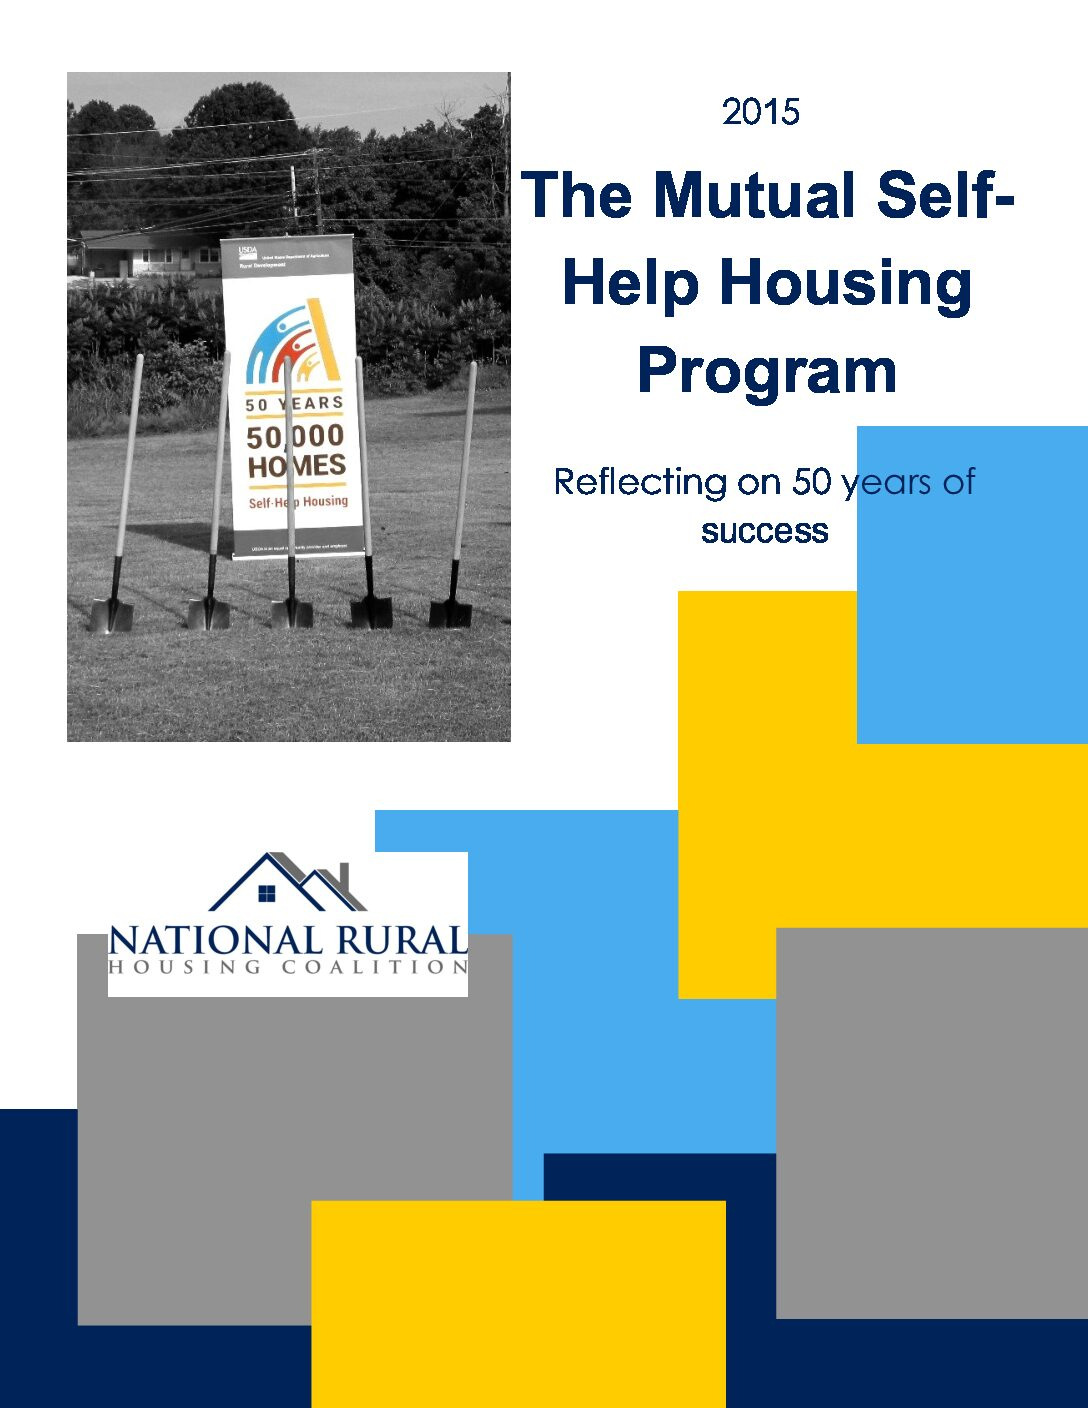 The Mutual Self-Help Housing Program: Reflecting on 50 years of success